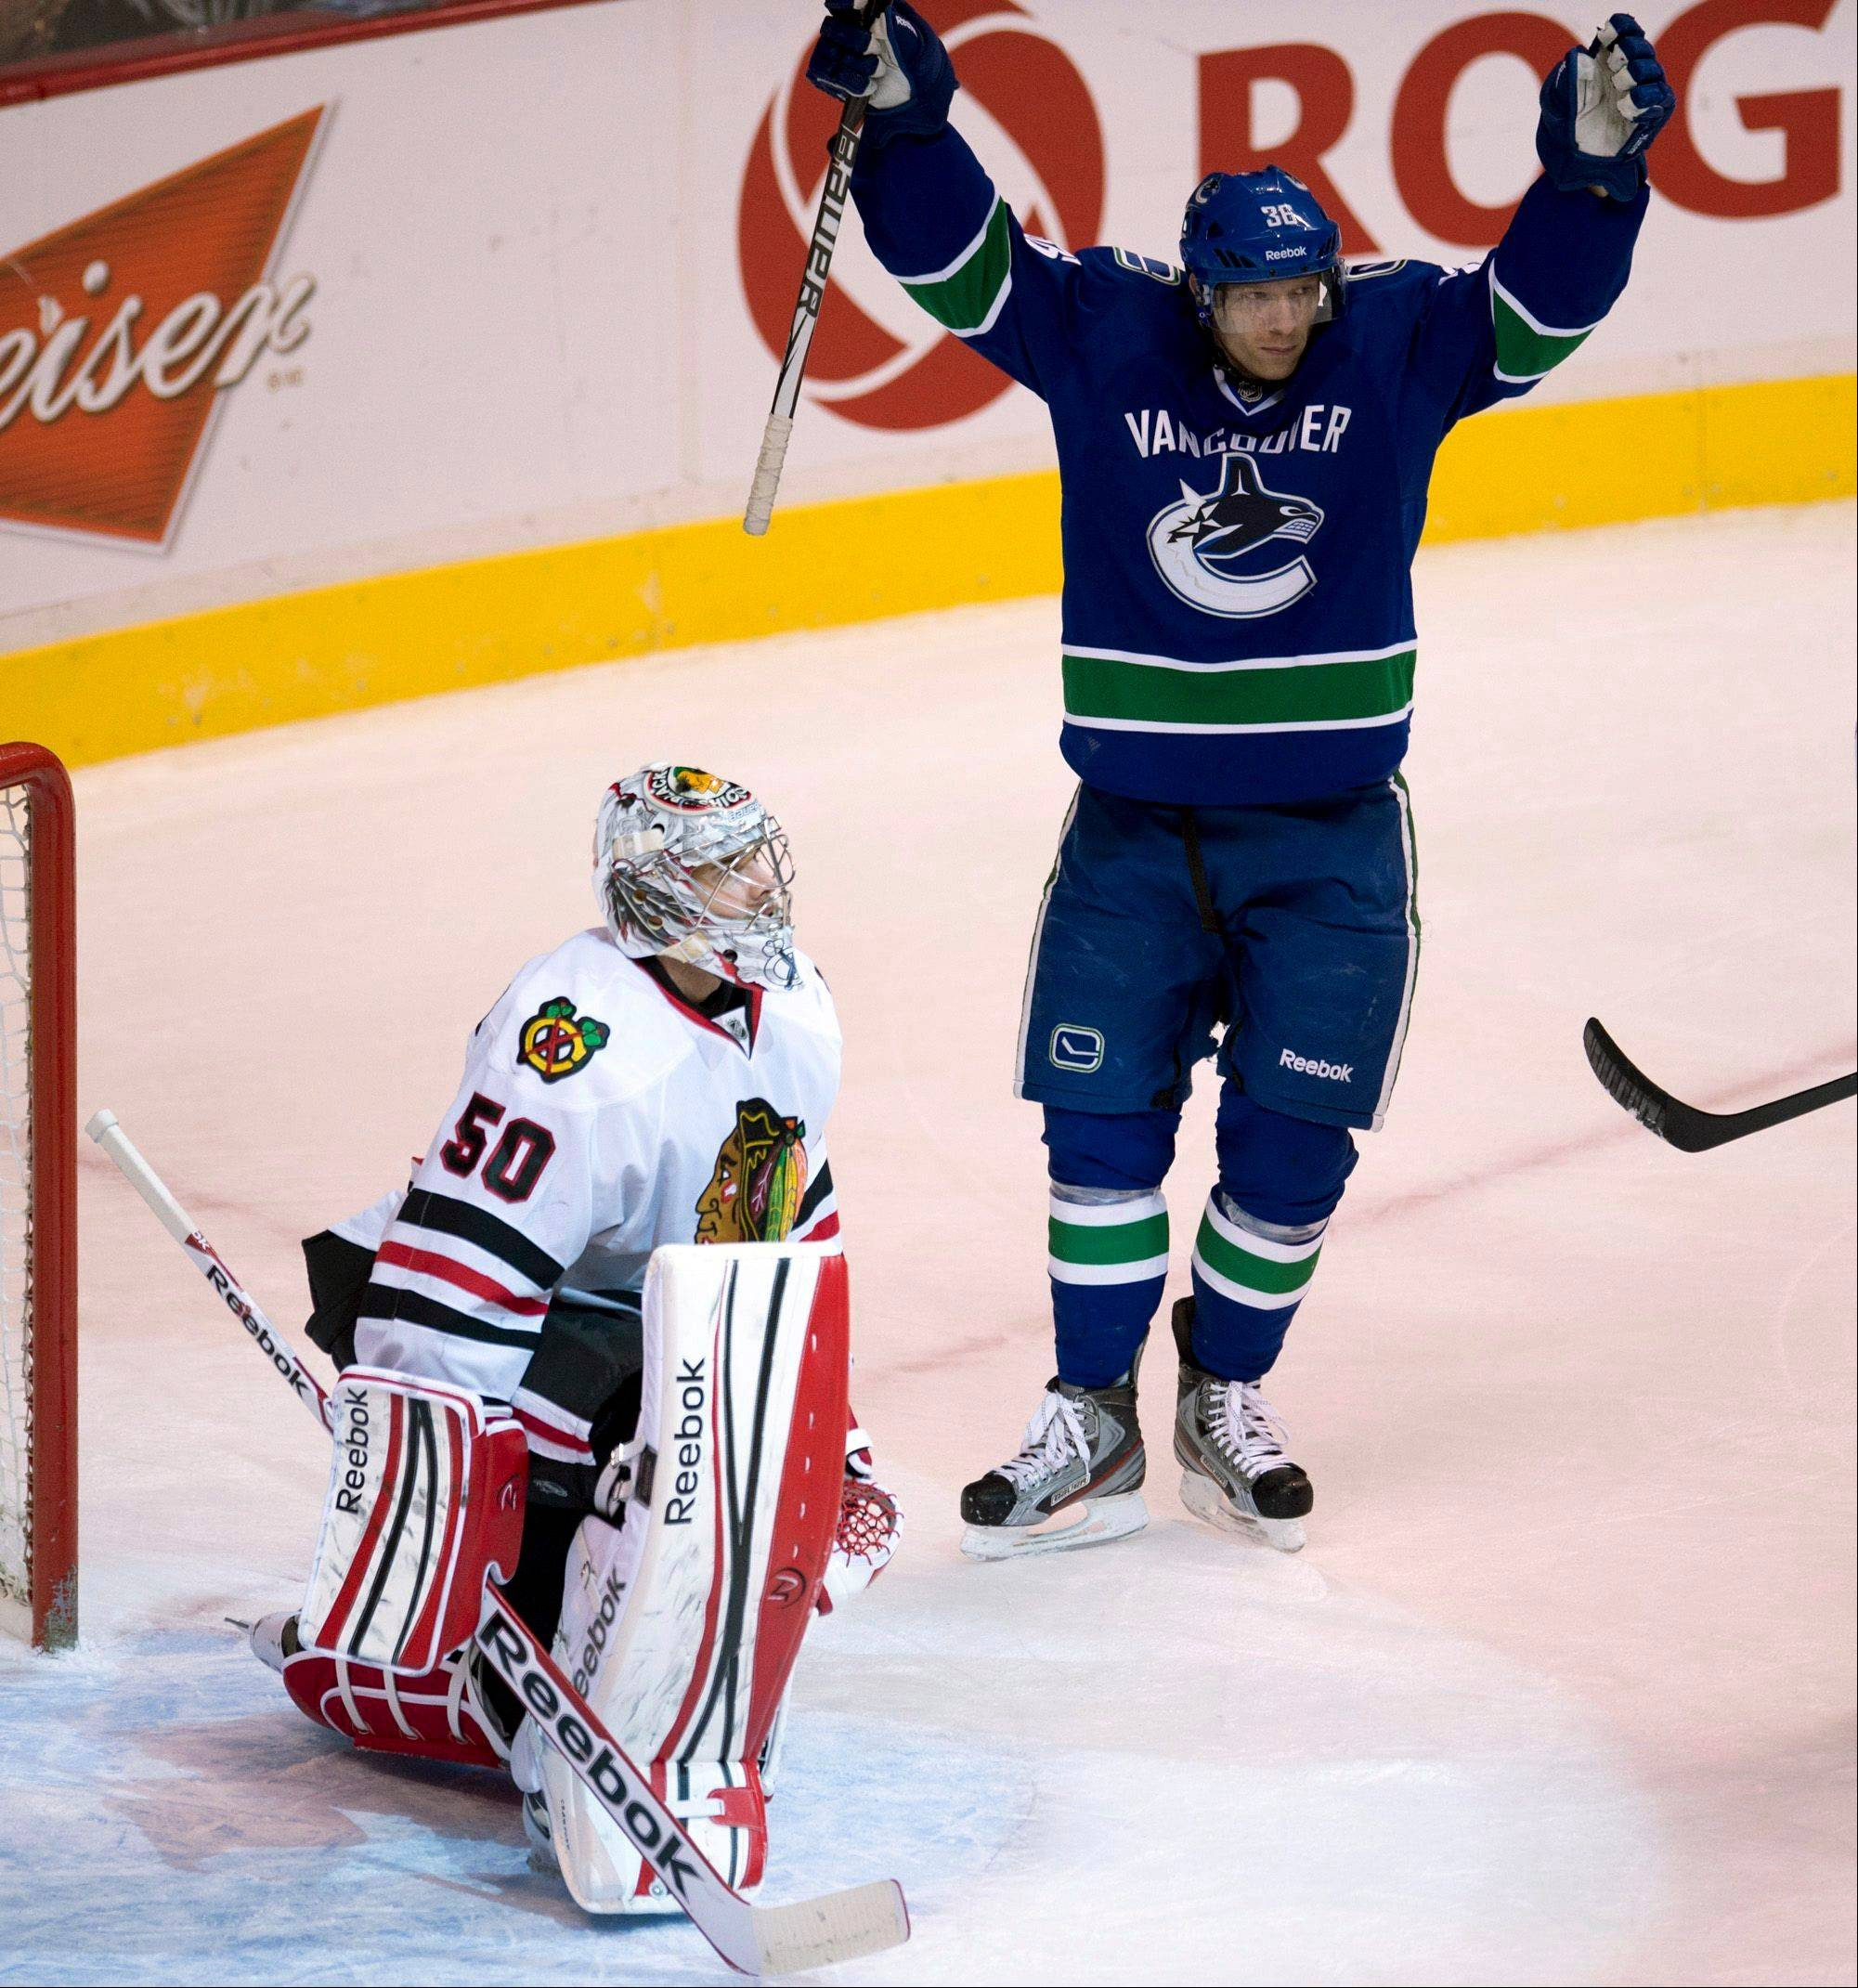 Vancouver Canucks right wing Jannik Hansen (36) celebrates his goal past Chicago Blackhawks goalie Corey Crawford (50) during the first period of their NHL hockey game in Vancouver, British Columbia, Monday, April 22, 2013.